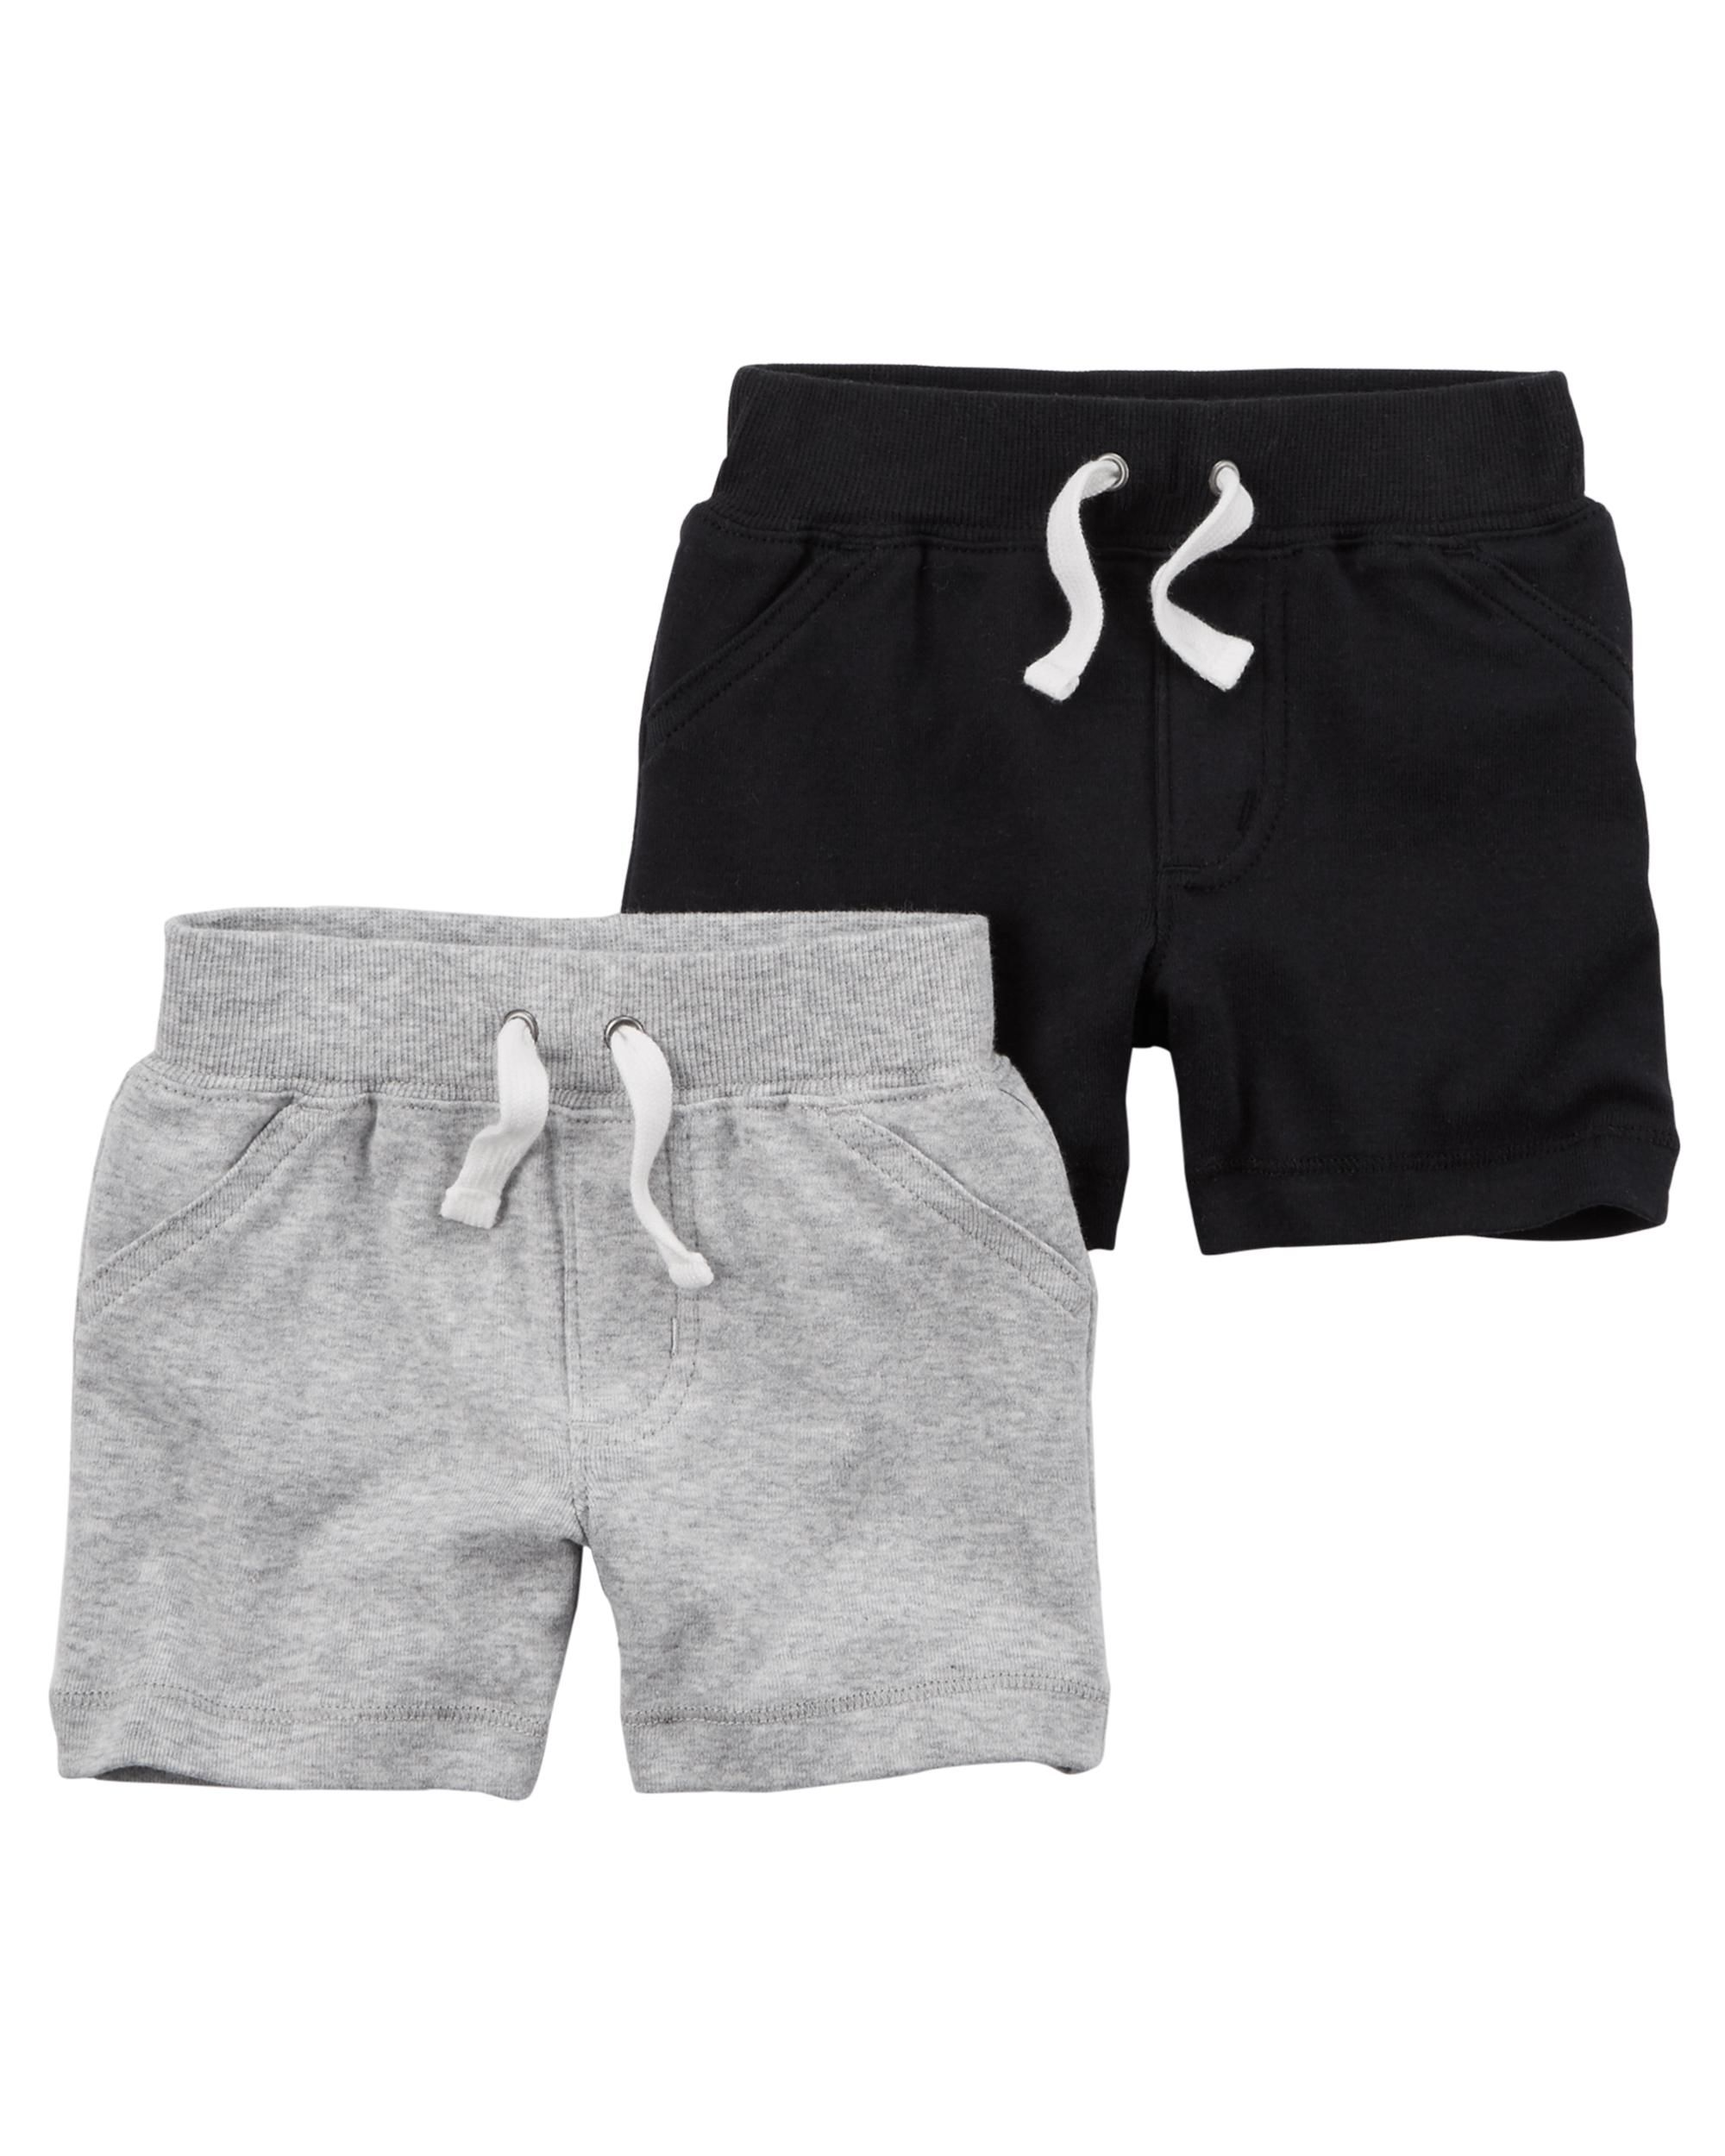 Carter's Baby Boys' 2 Pack Shorts- Black/Grey -Newborn